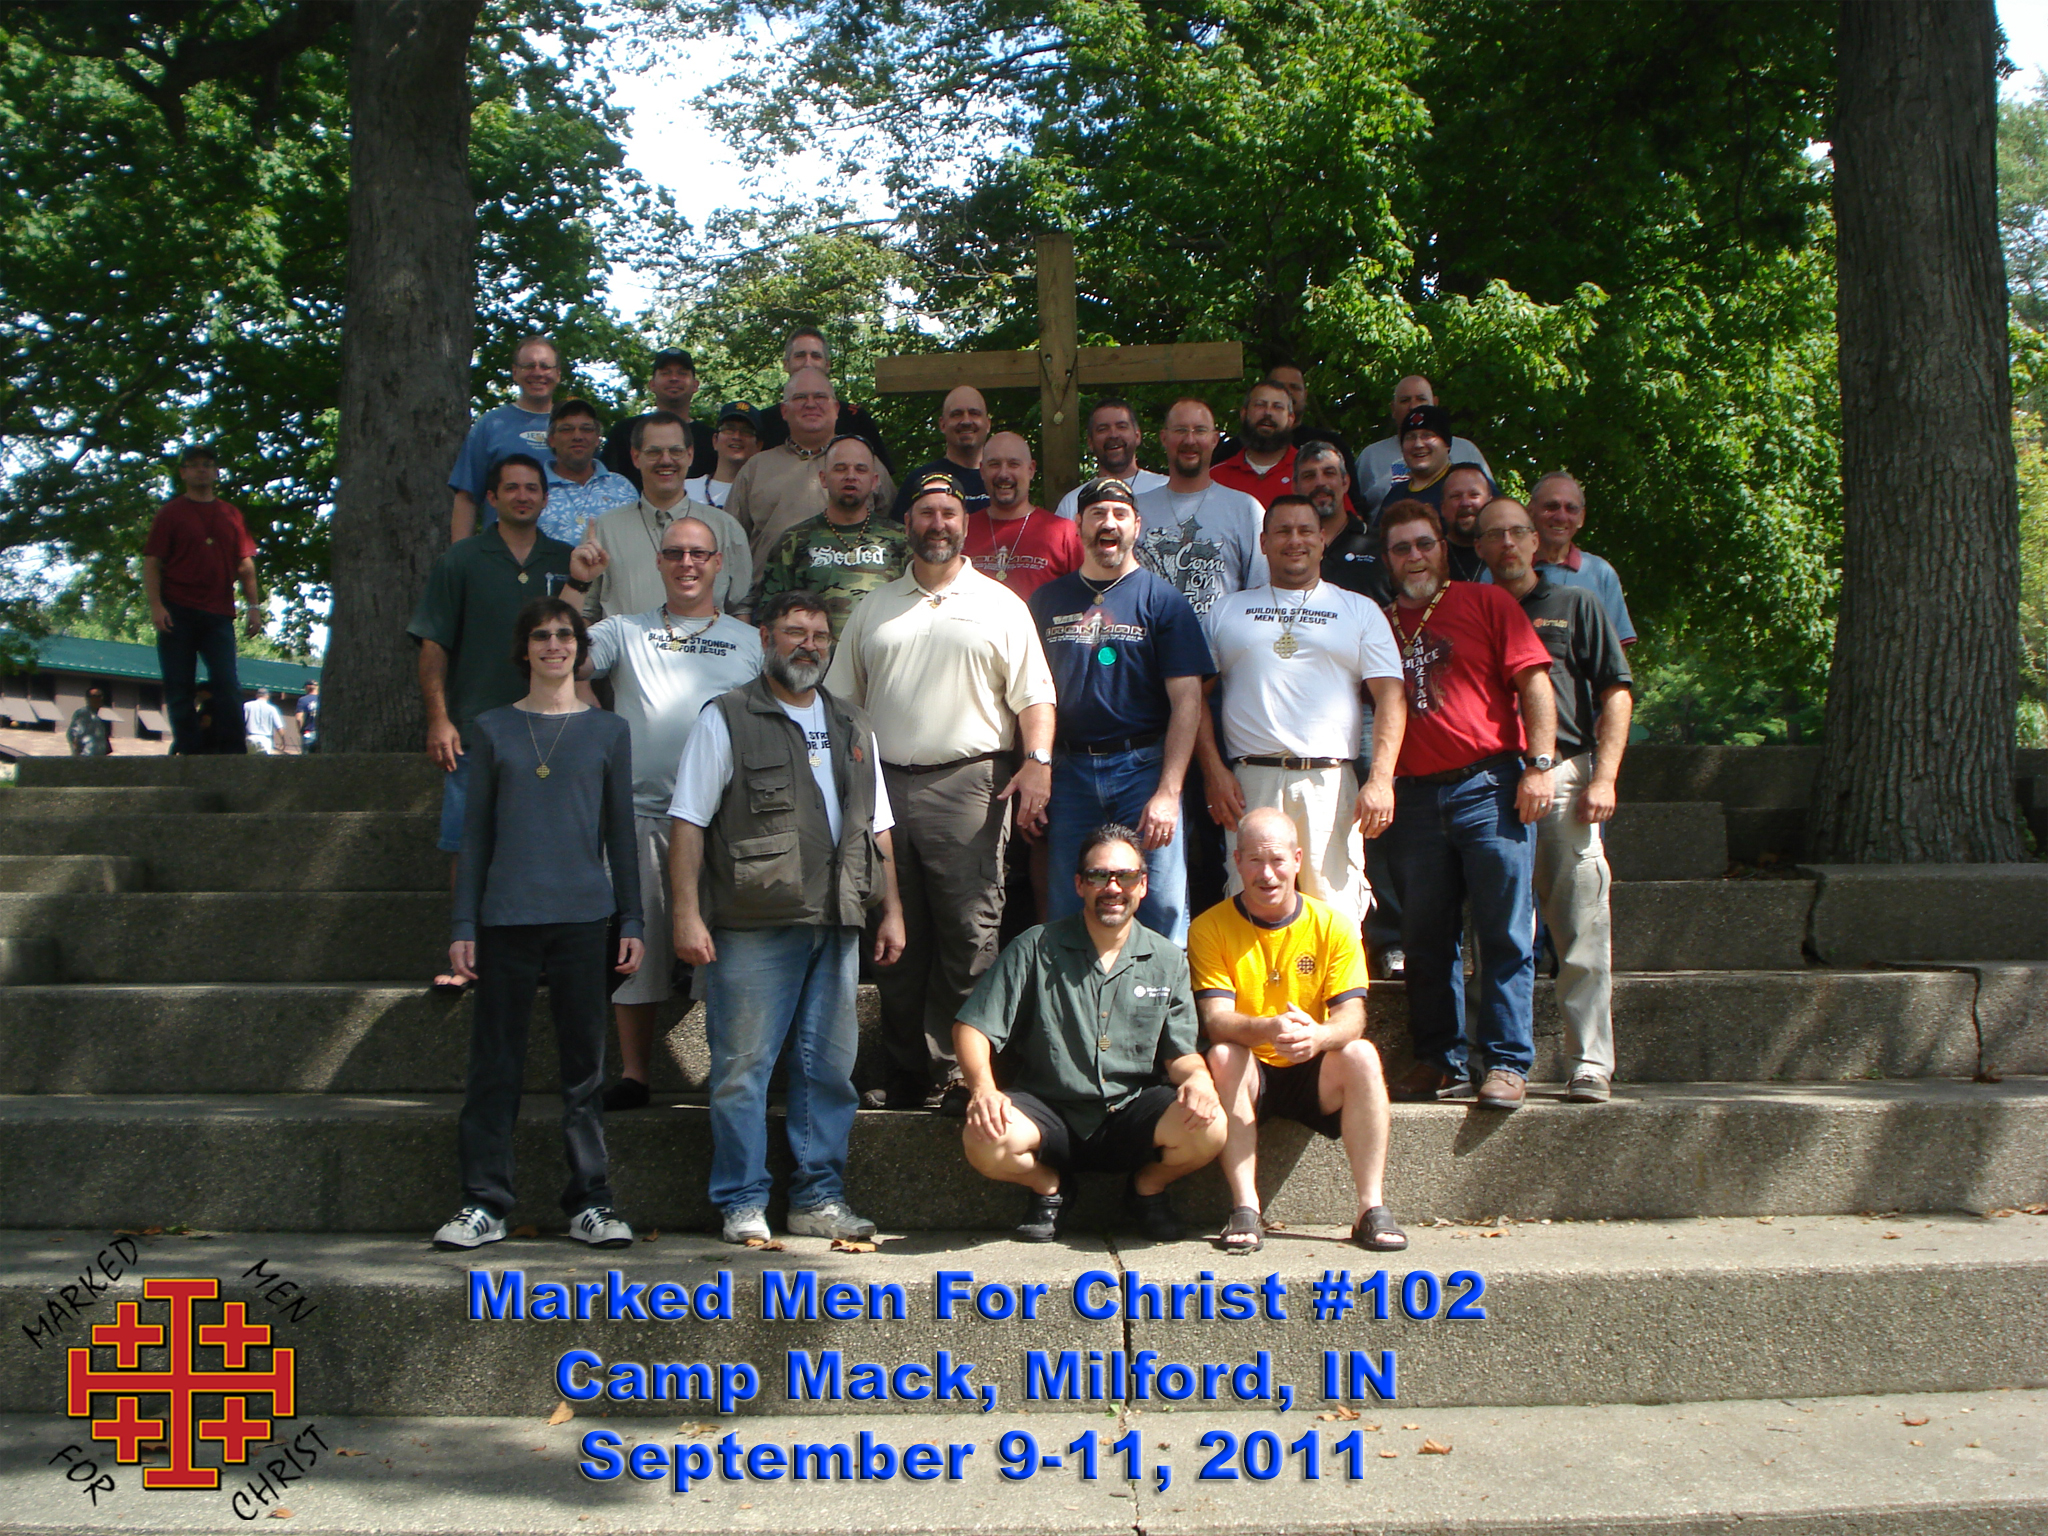 2011-09-SEP-IN-Staff.7e730039-1567-4c2b-a821-8cb5d38a5902